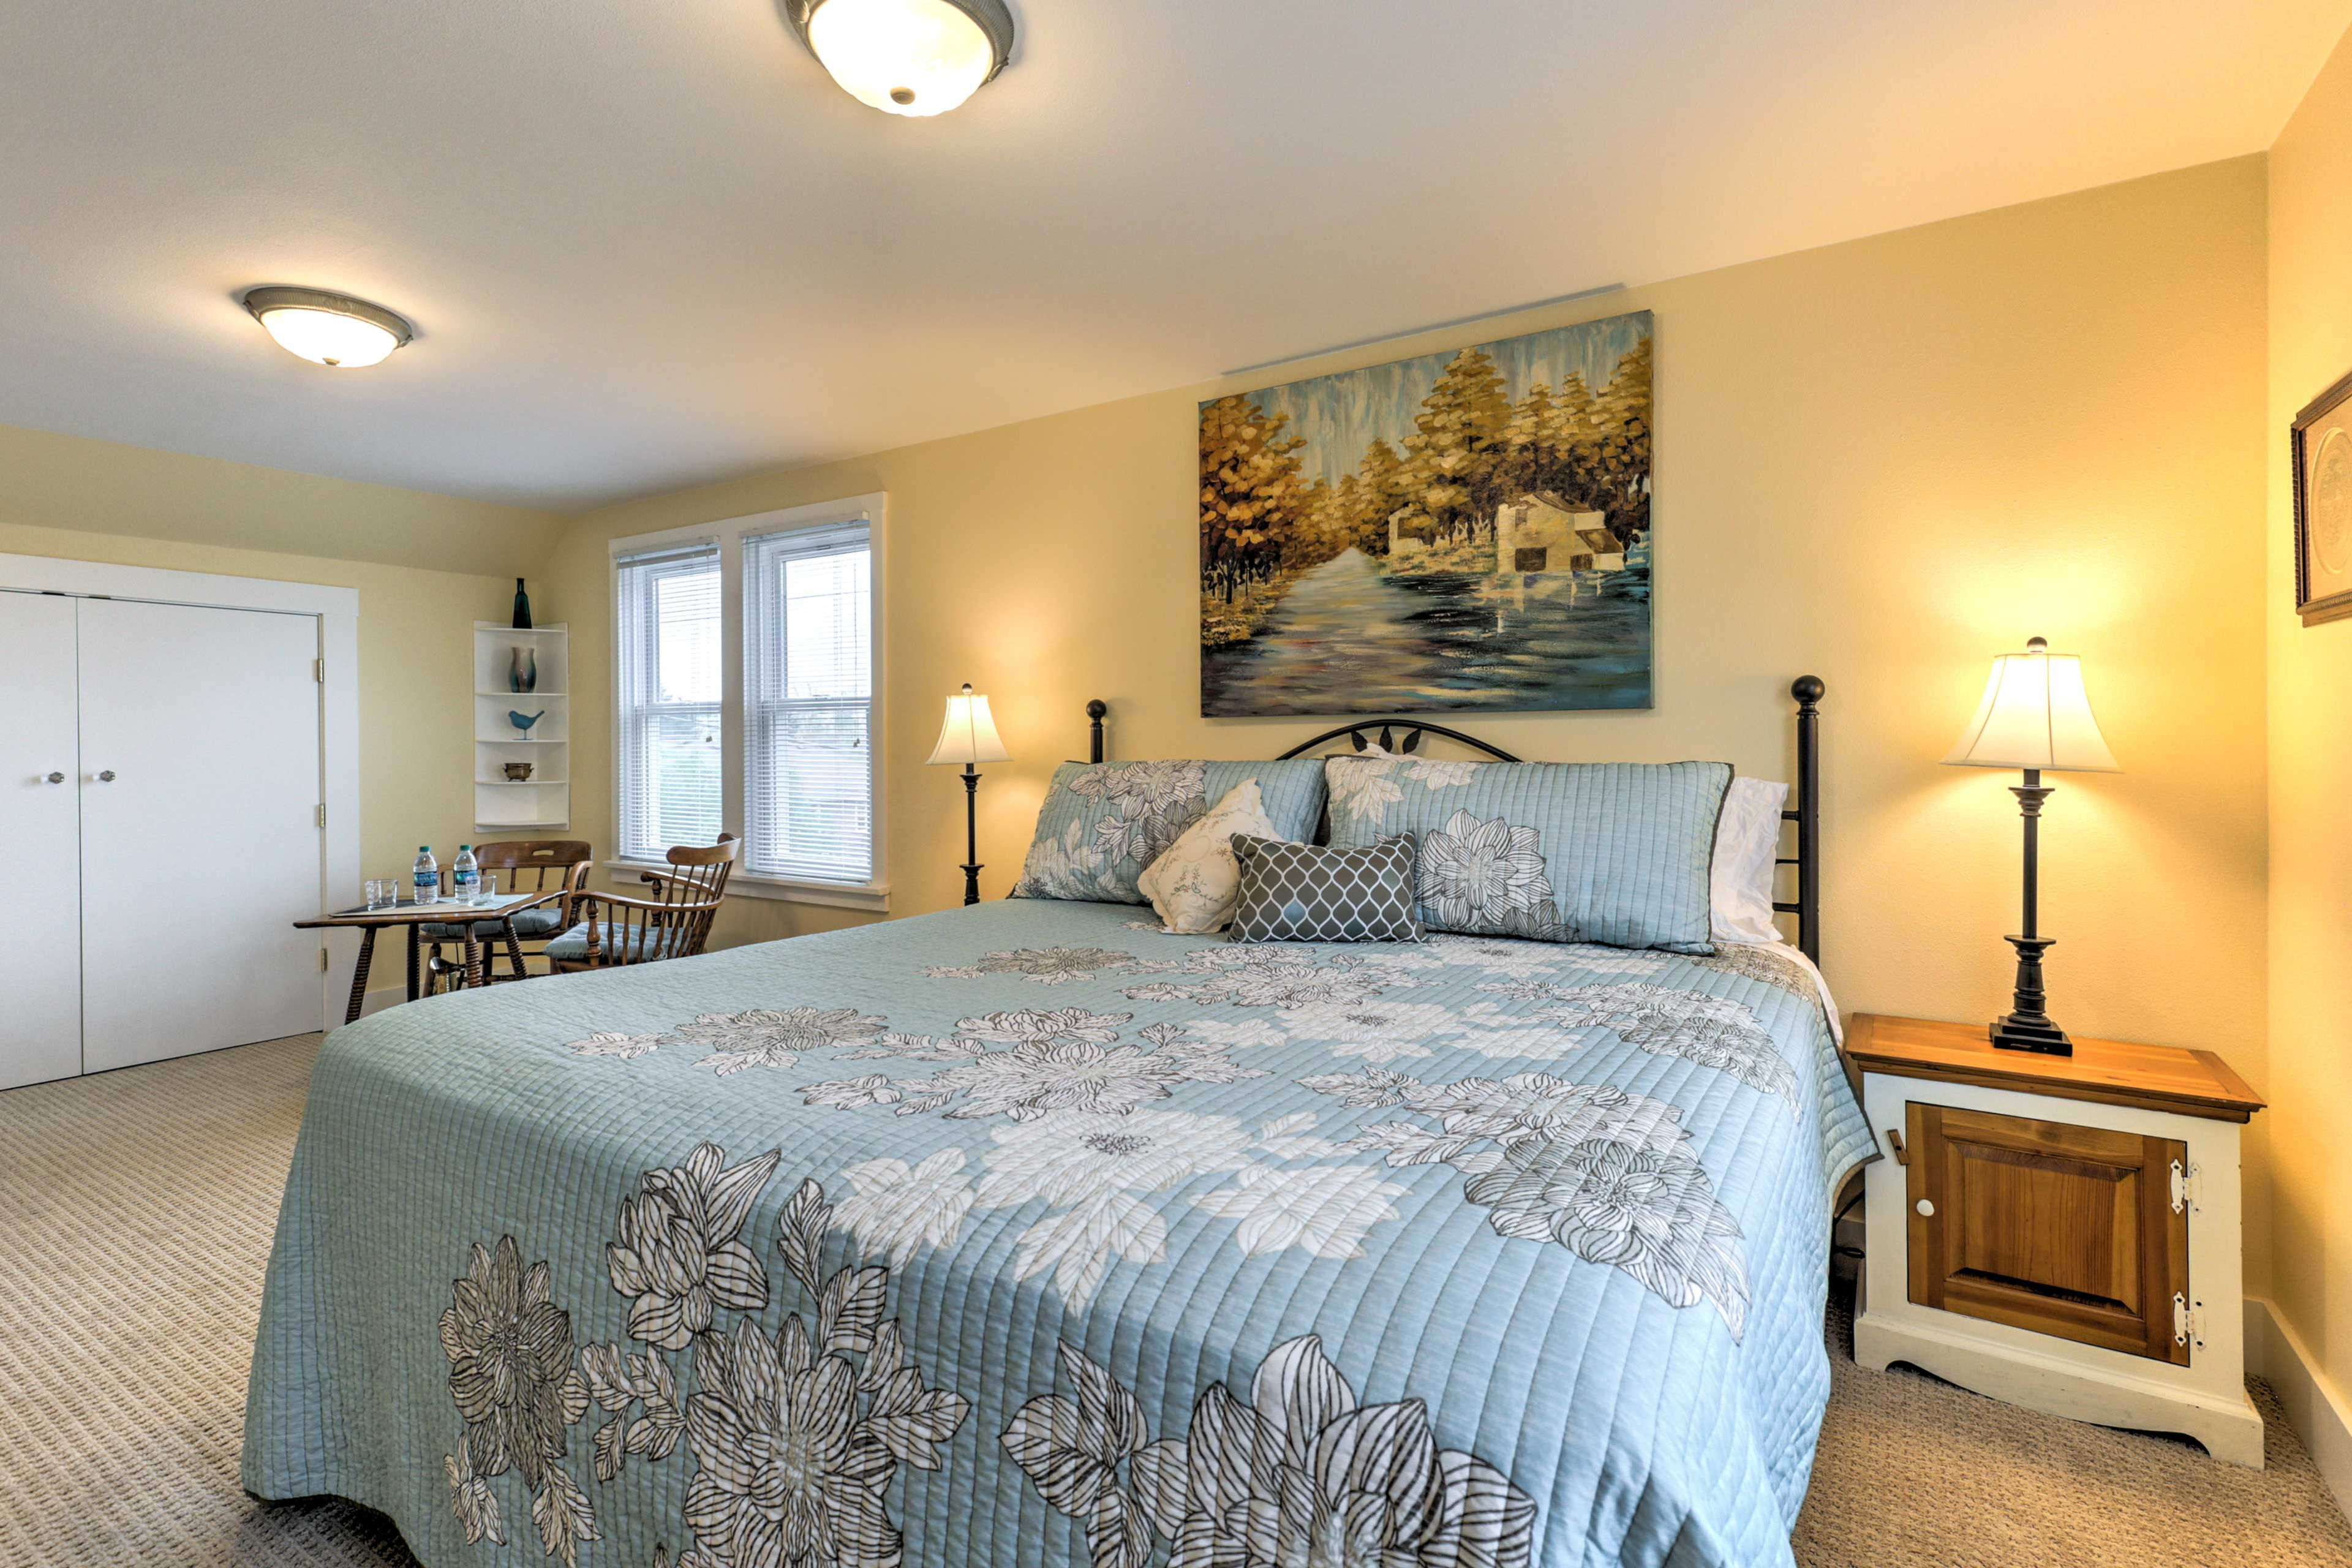 The spacious master bedroom is equipped with a plush king bed.